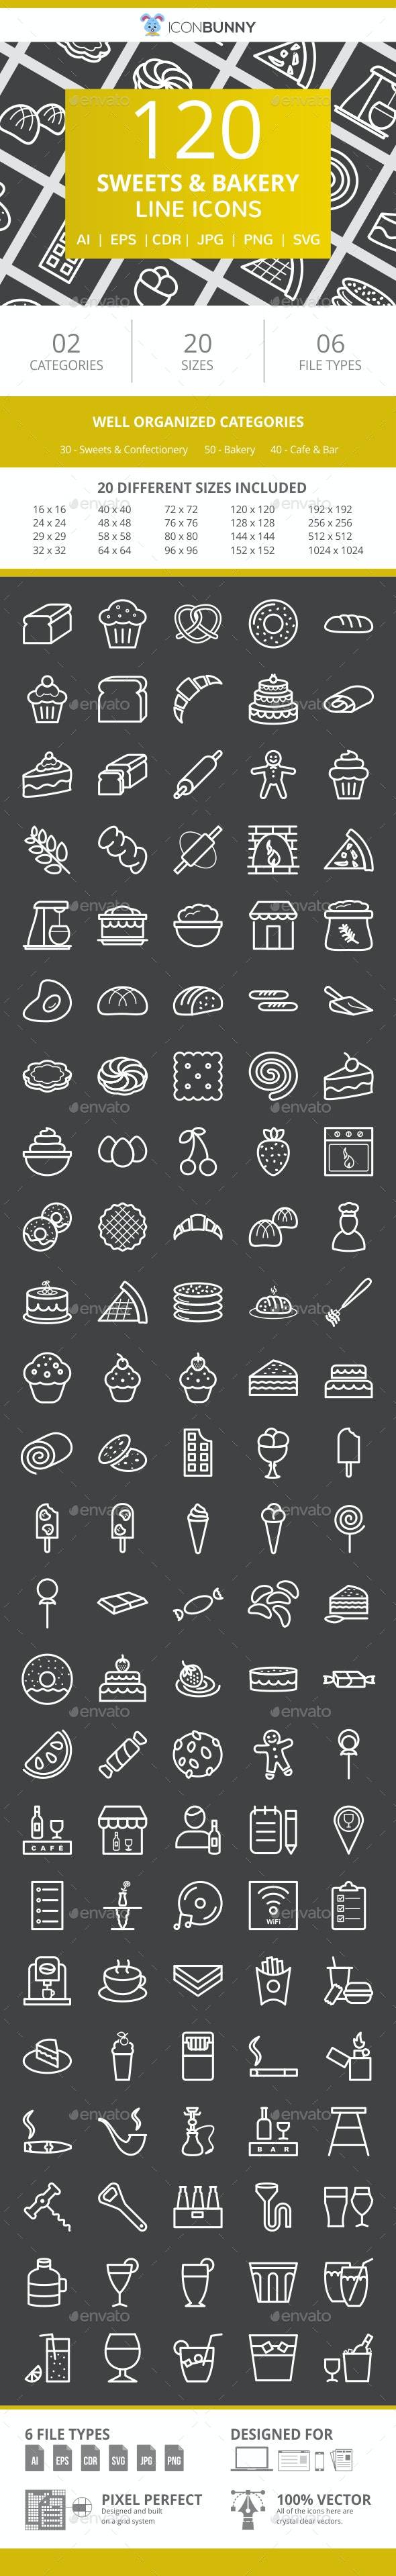 120 Sweets & Bakery Line Inverted Icons - Icons